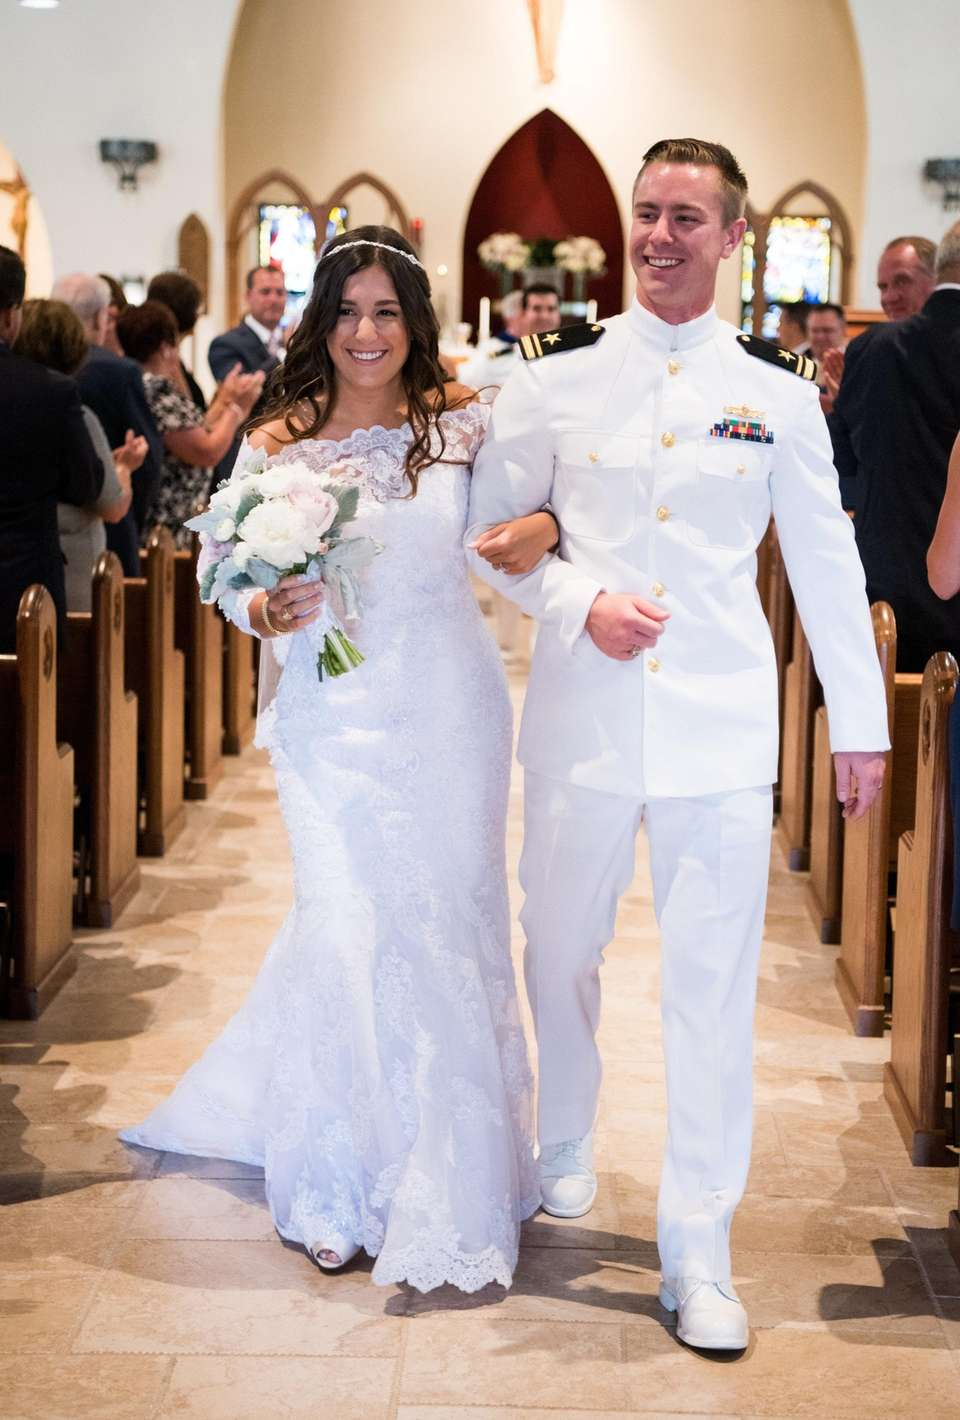 Abad-Moser Ensign Danielle Elizabeth Abad and Lieutenant Junior